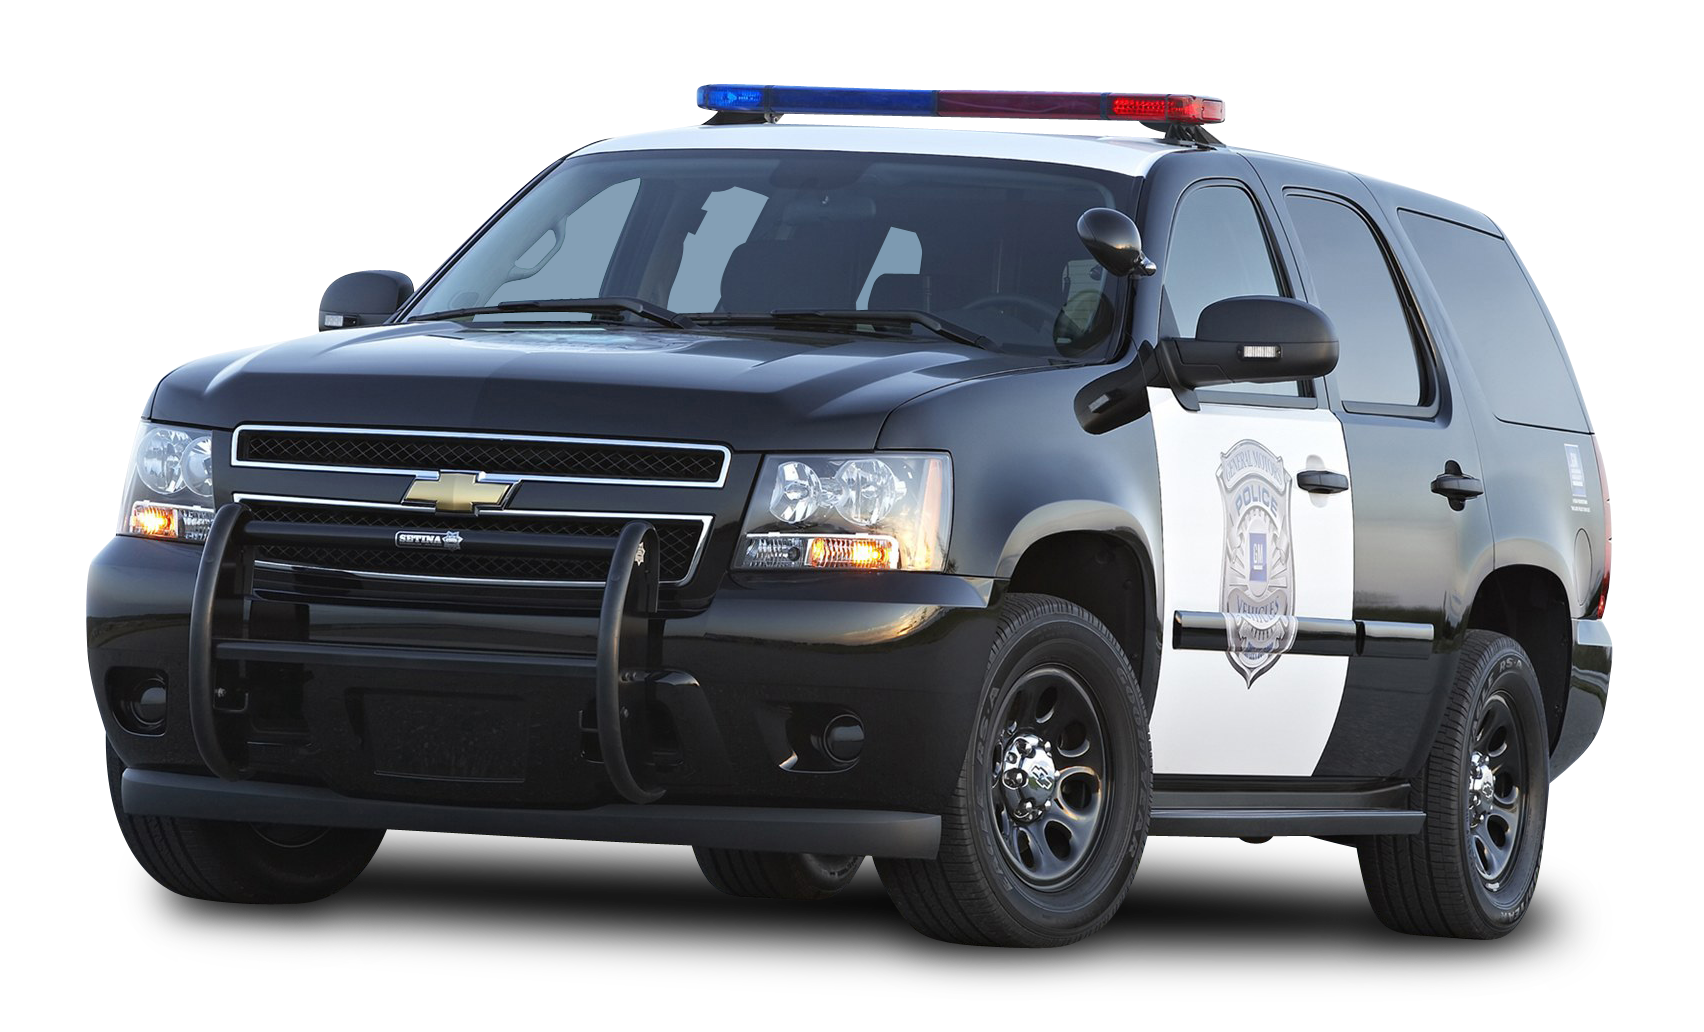 Black Chevy Tahoe Police SUV PPV Car PNG Image